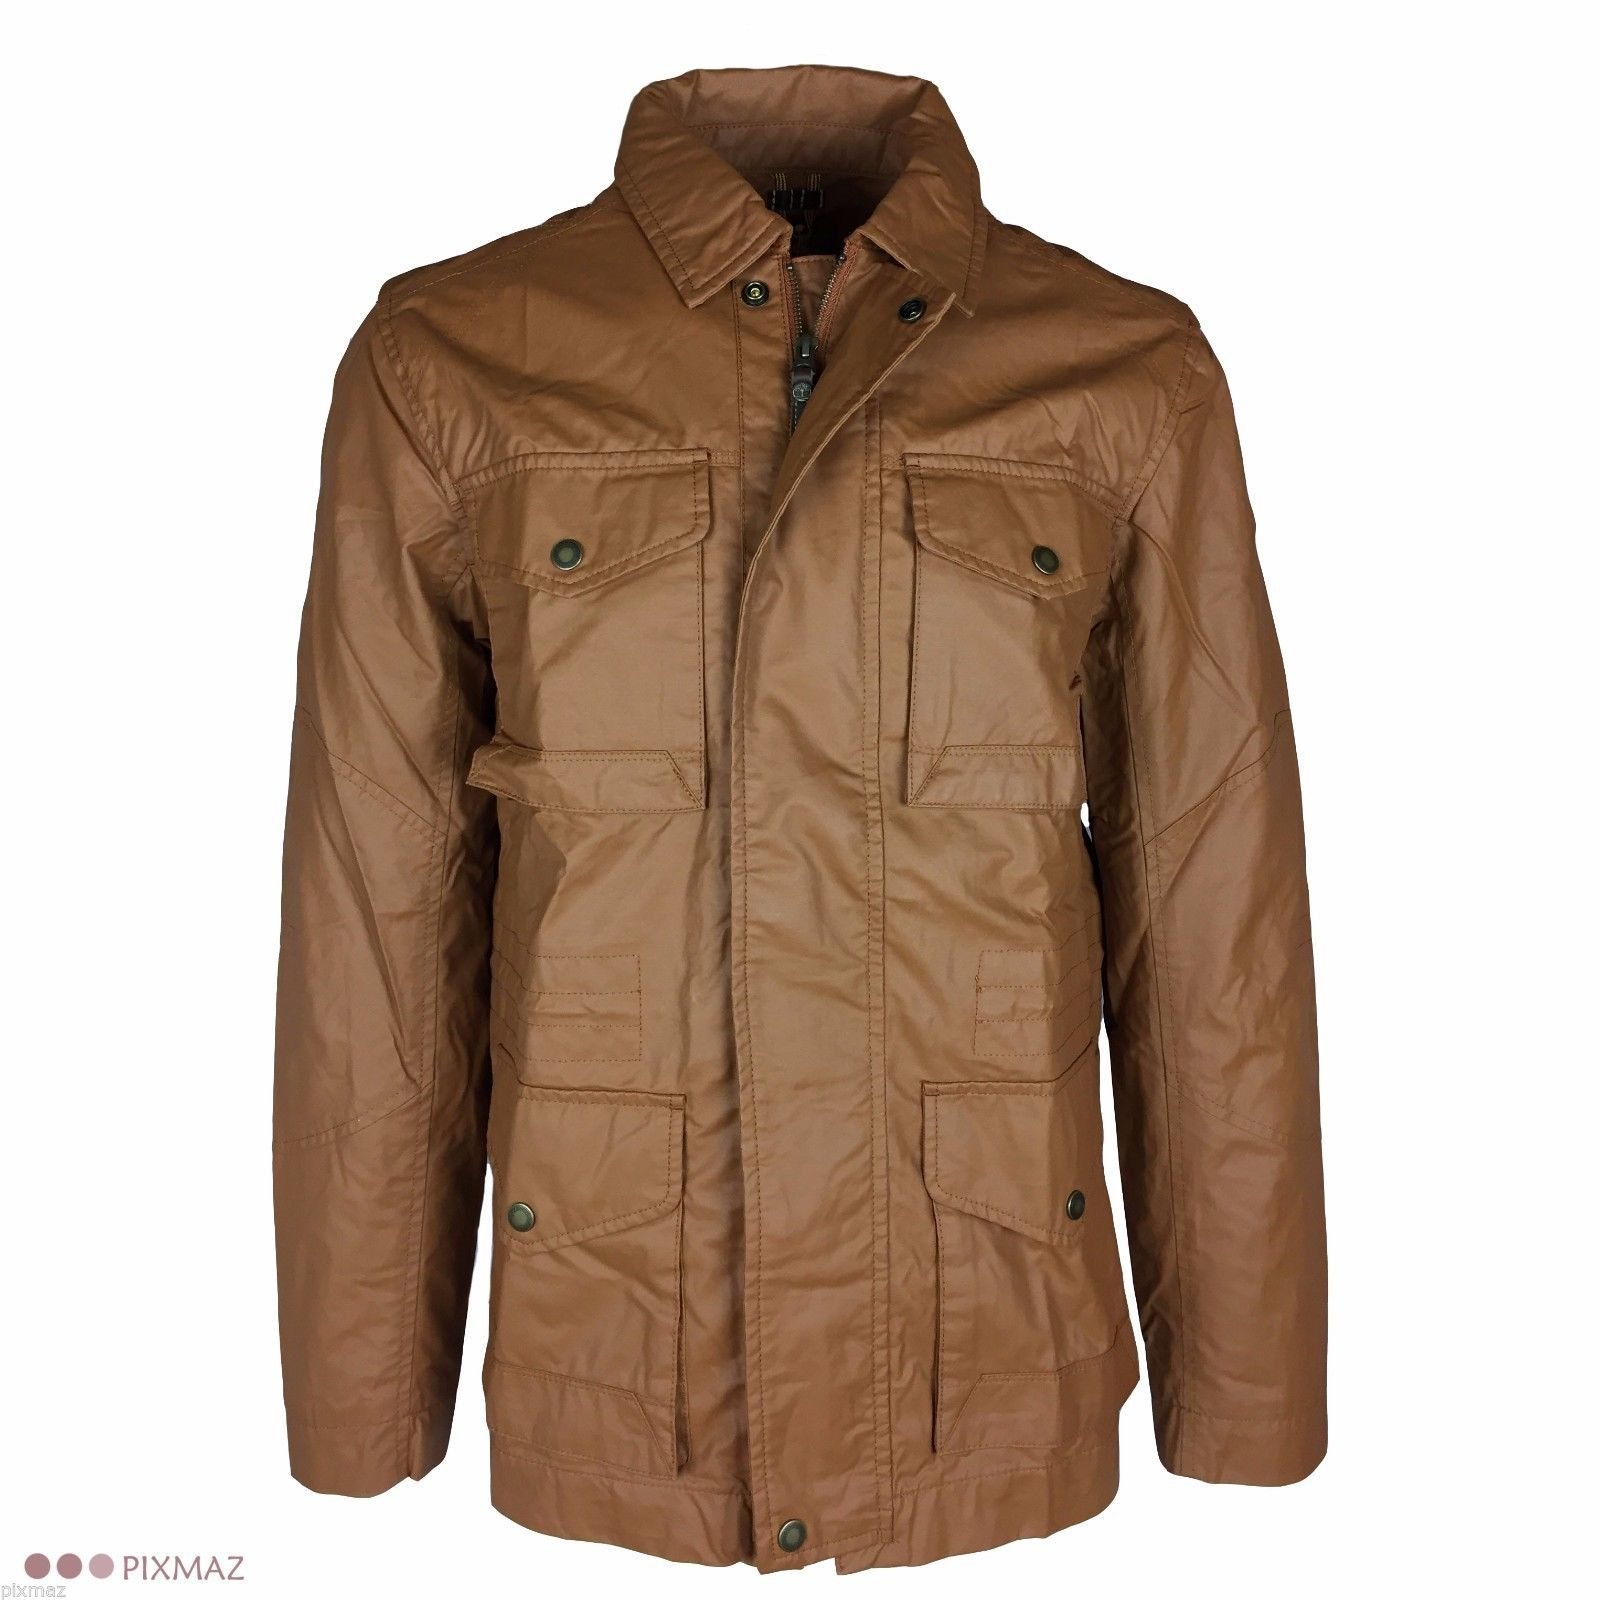 Timberland Men's Mount Wilson Field Fir Yellow Jacket Style #5513J